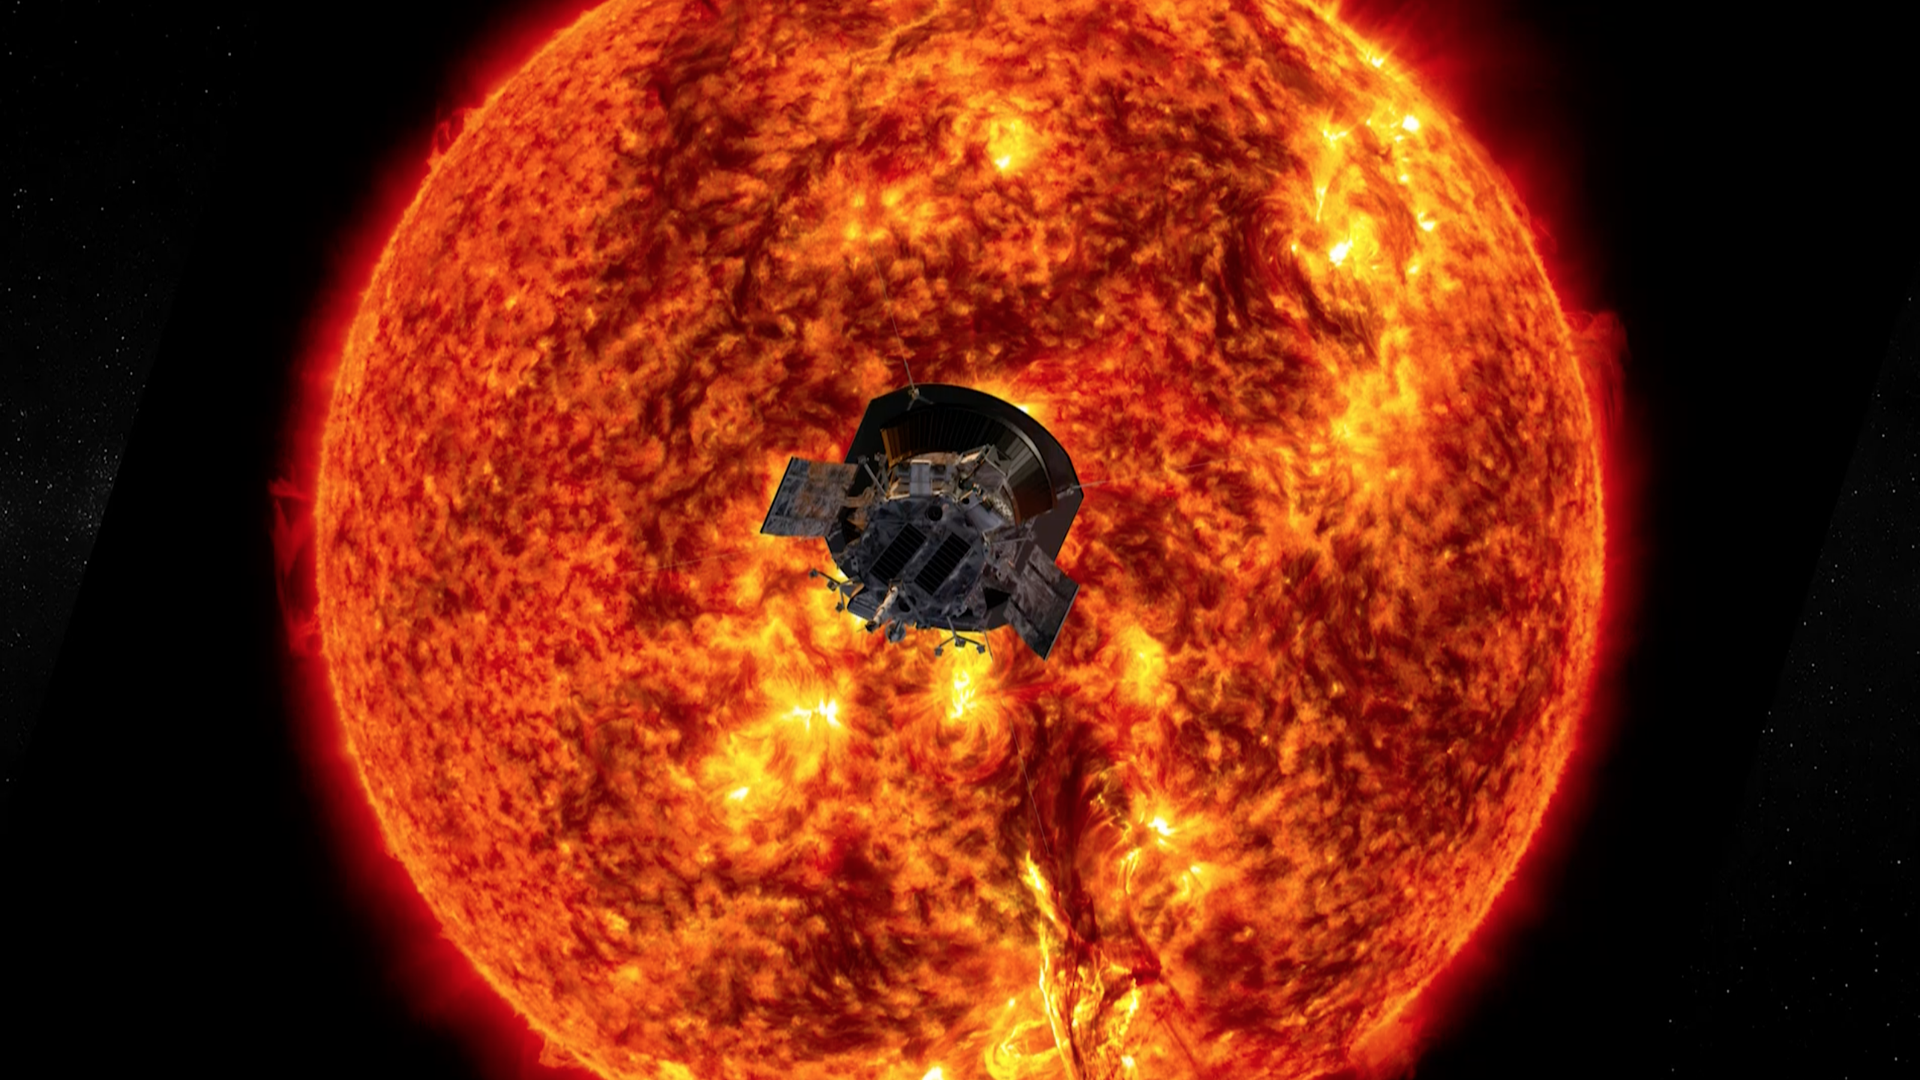 Illustration of the Parker Solar Probe in front of the Sun